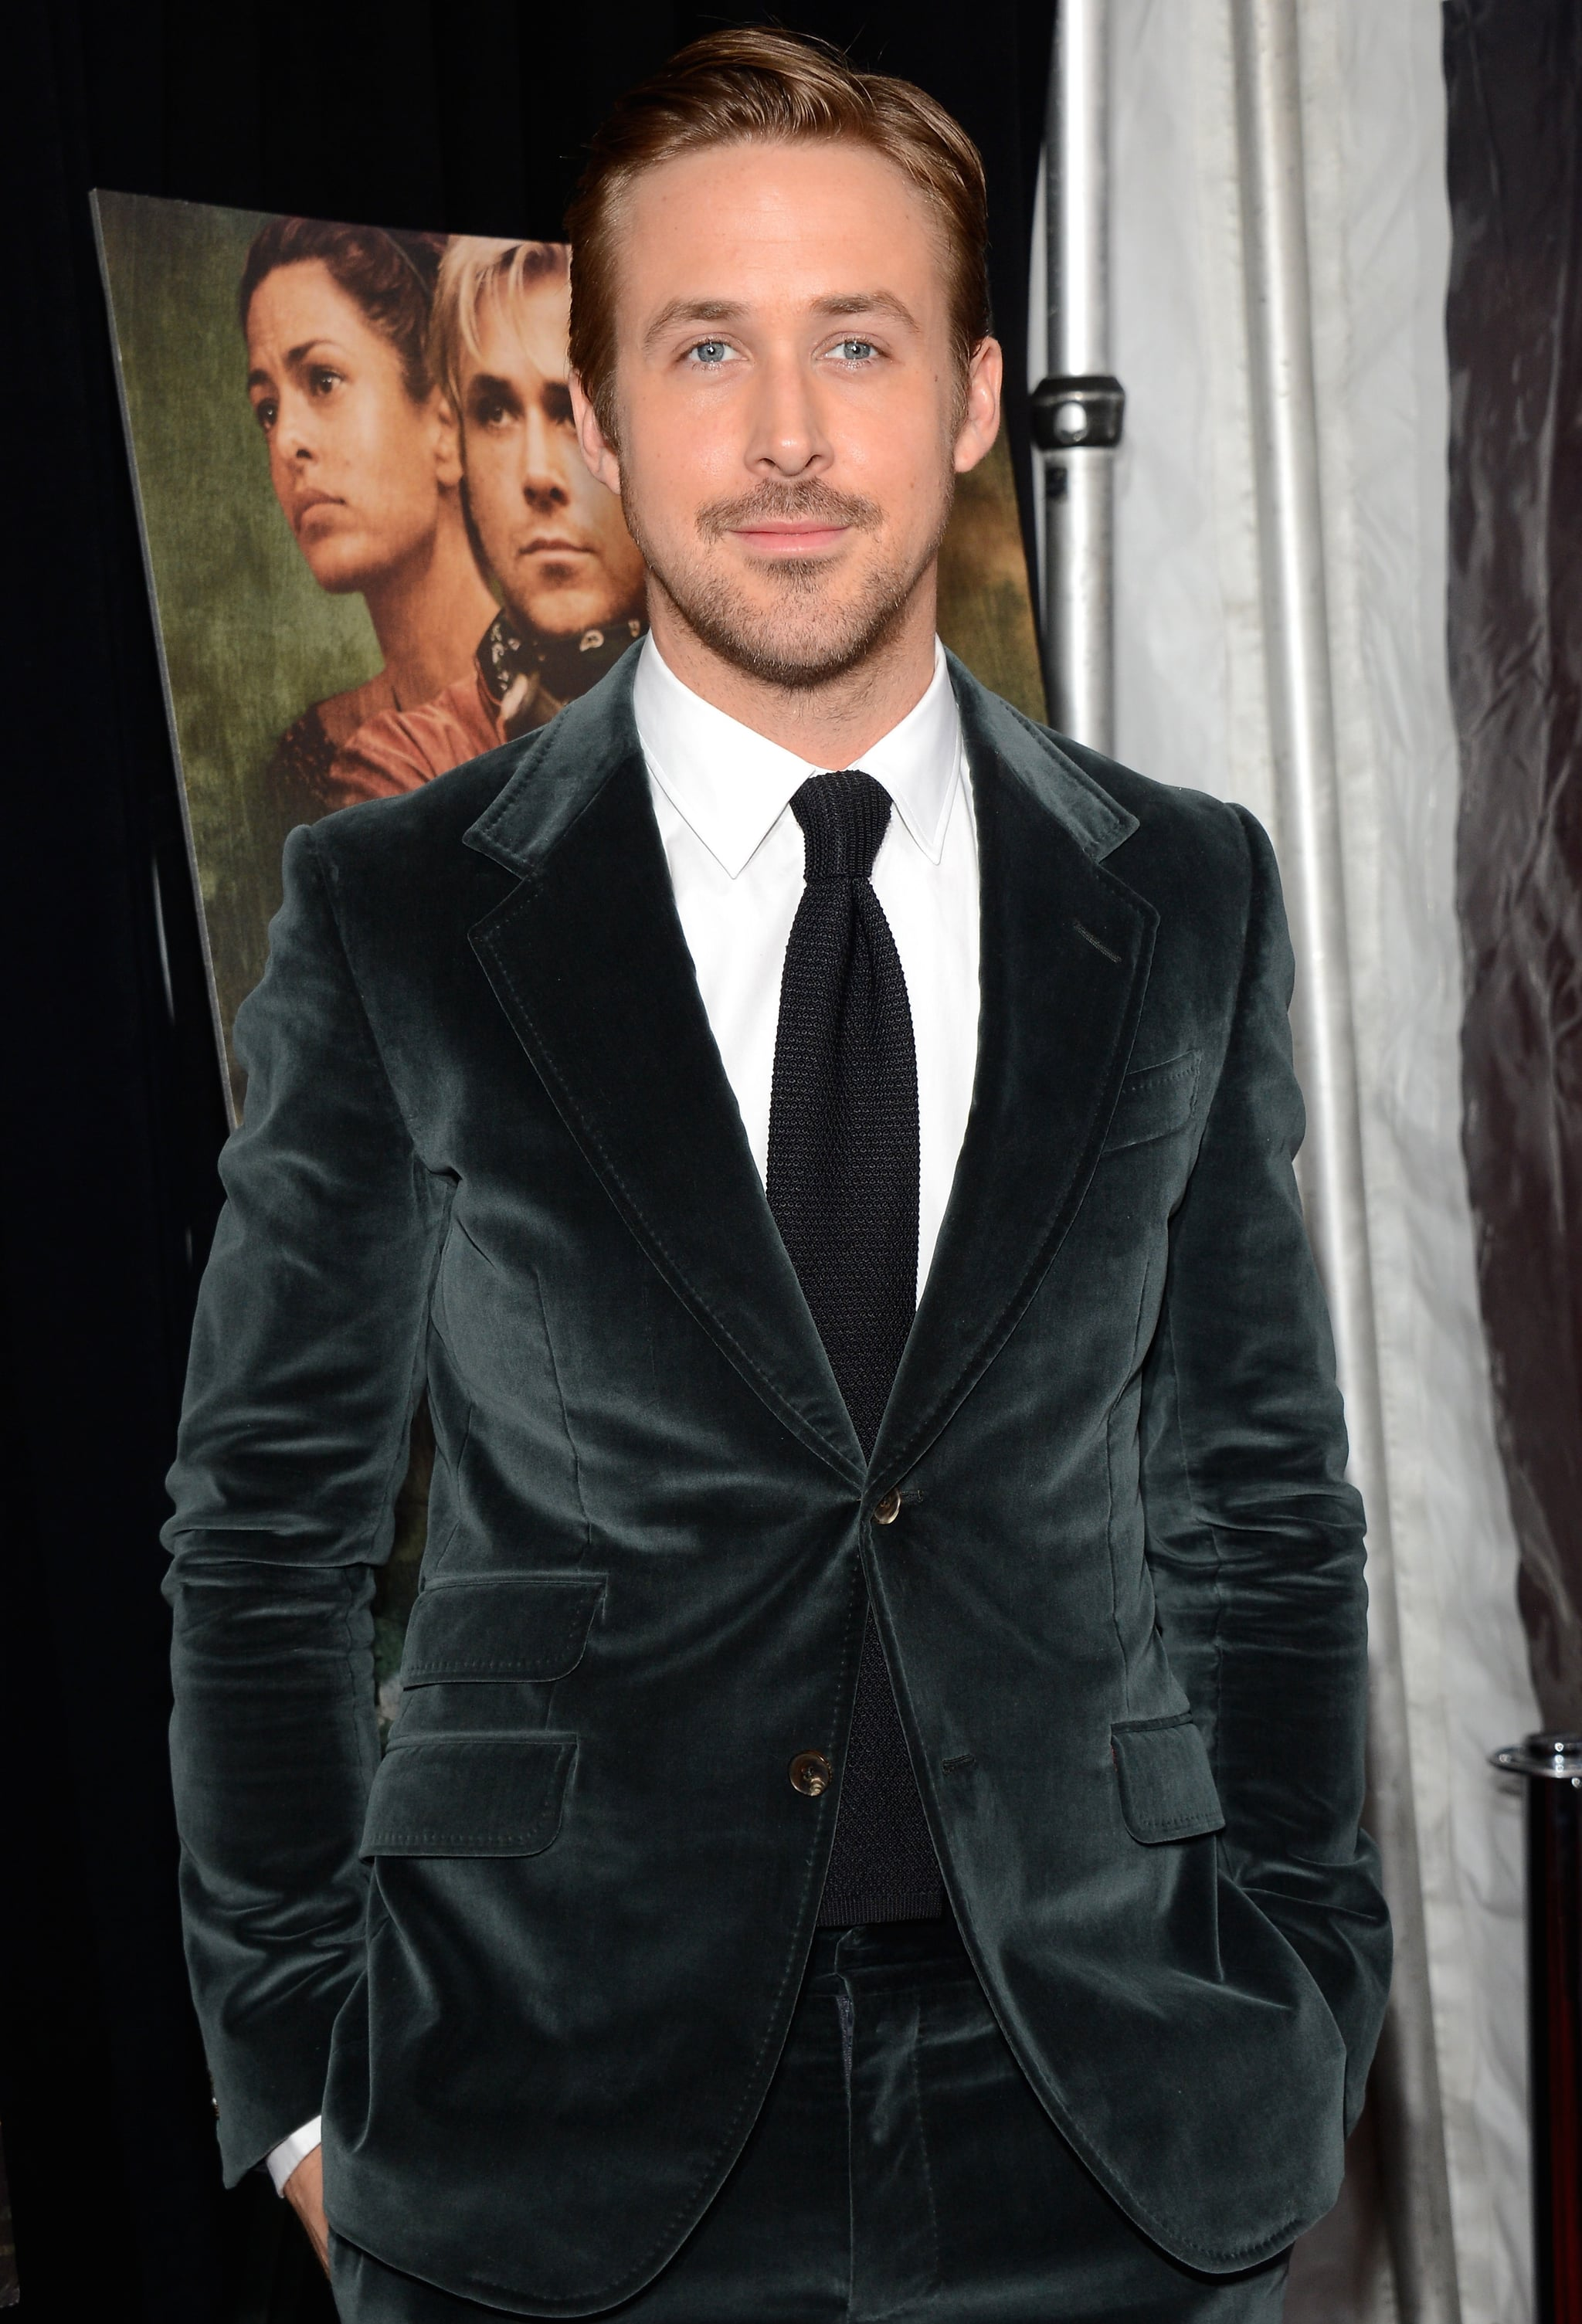 Ryan Gosling may play Busby Berkeley, the legendary choreographer, in a biopic. Gosling may also produce and direct.